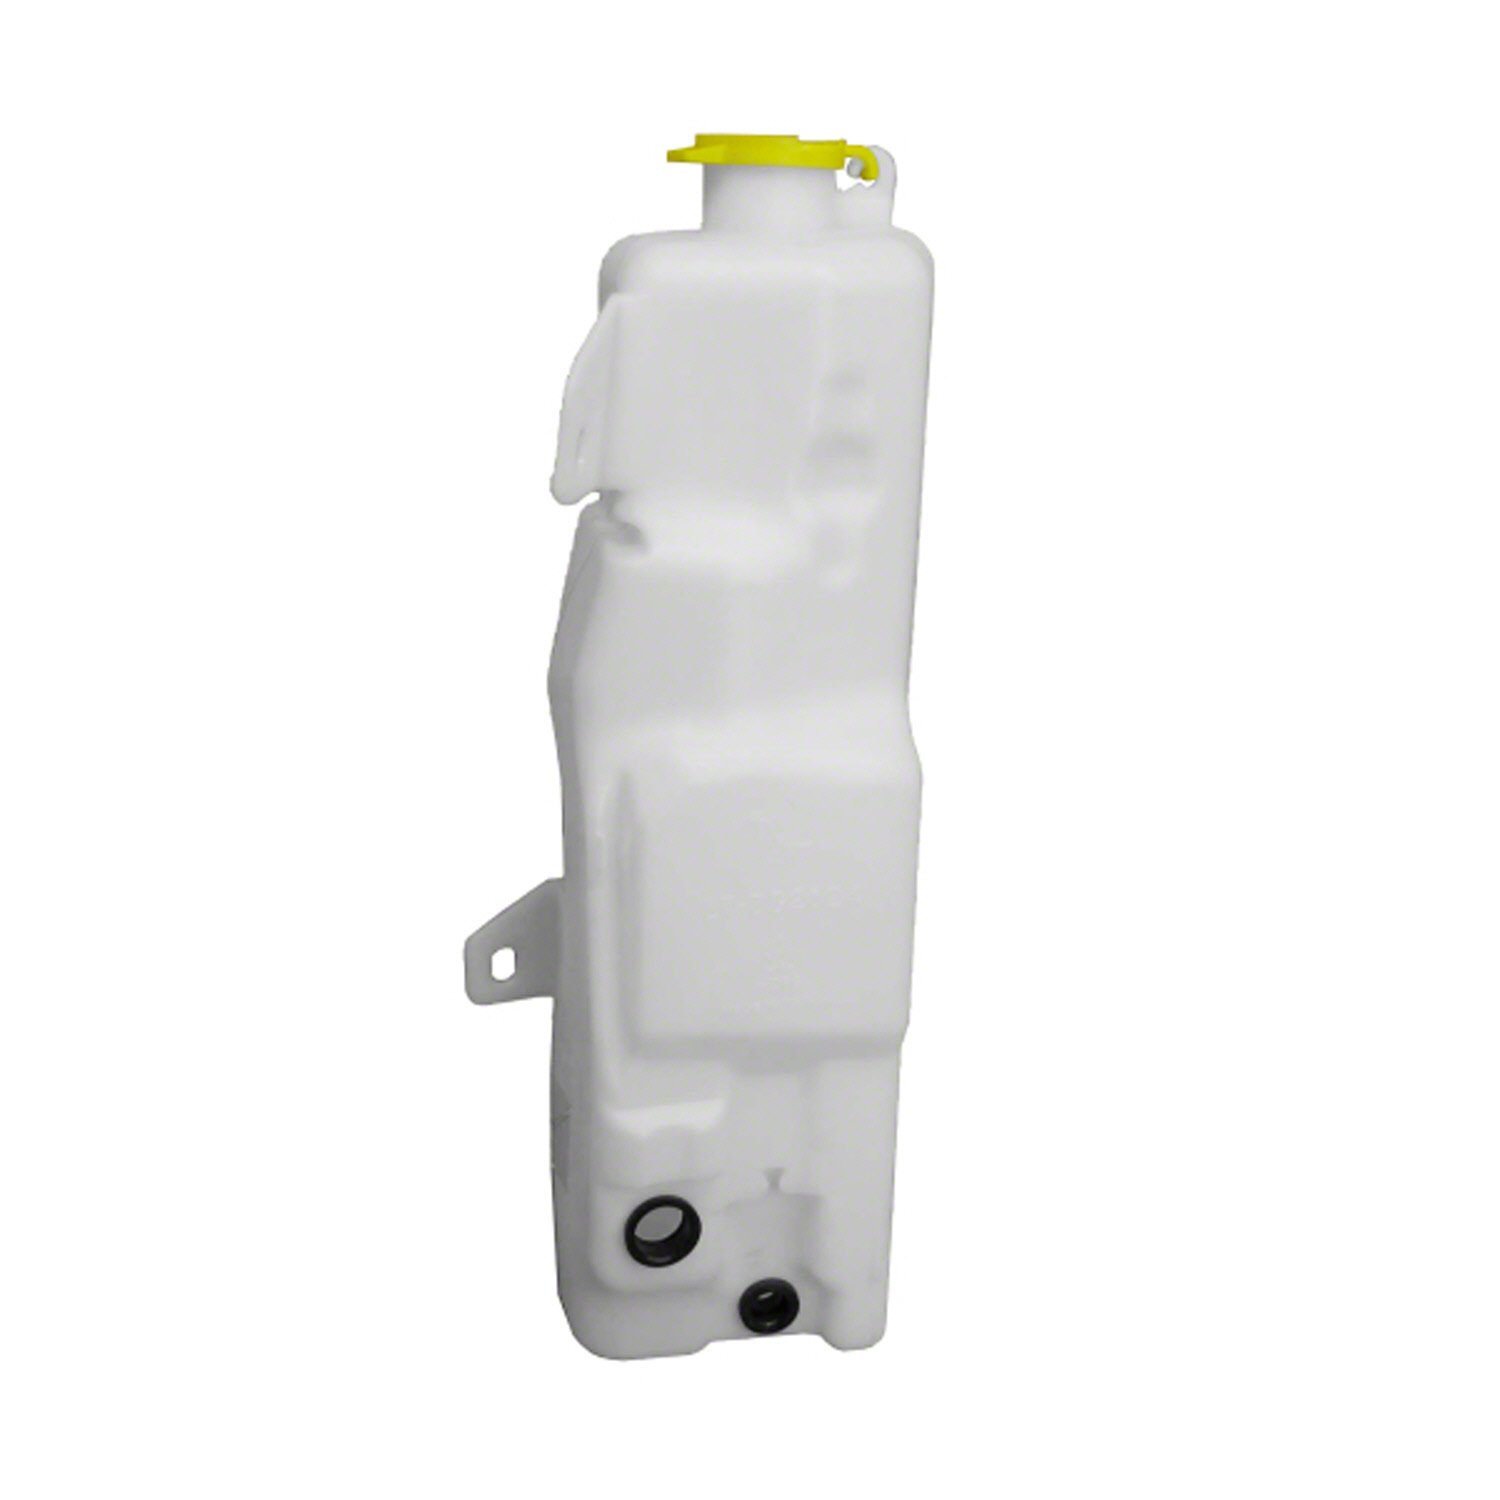 CPP Windshield Washer Tank Assembly for 06-08 Dodge Ram CH1288197